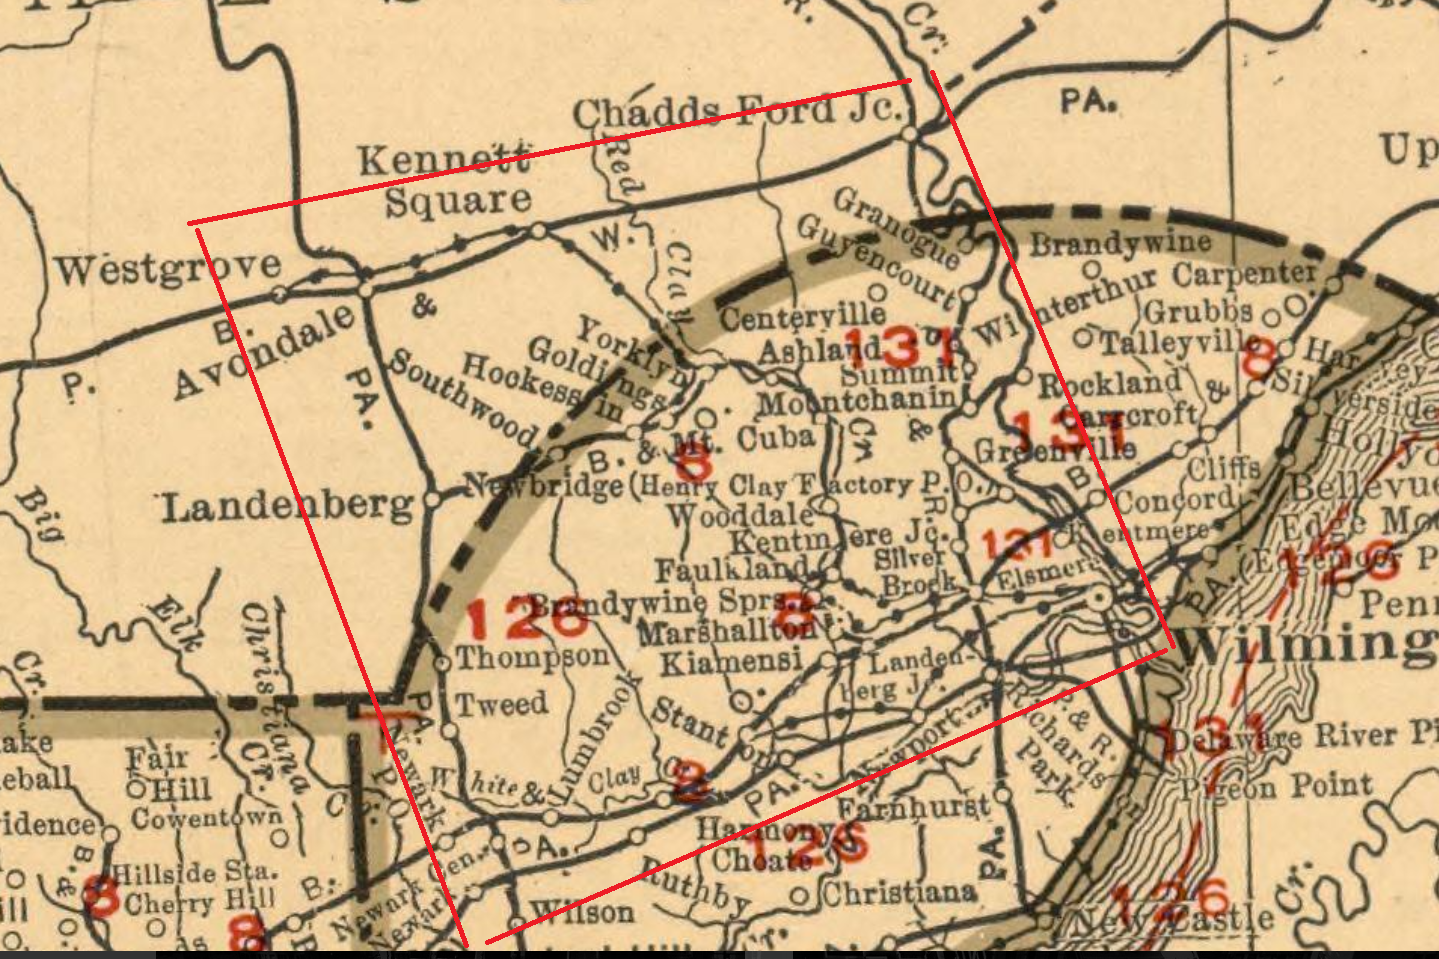 Roughly the area bounded by the red box: Chadd's Ford Junction to Avondale to Newark to Wilmington. The electric lines shown here aren't listed in the Official Guide to the Railways, so they don't get to be included.